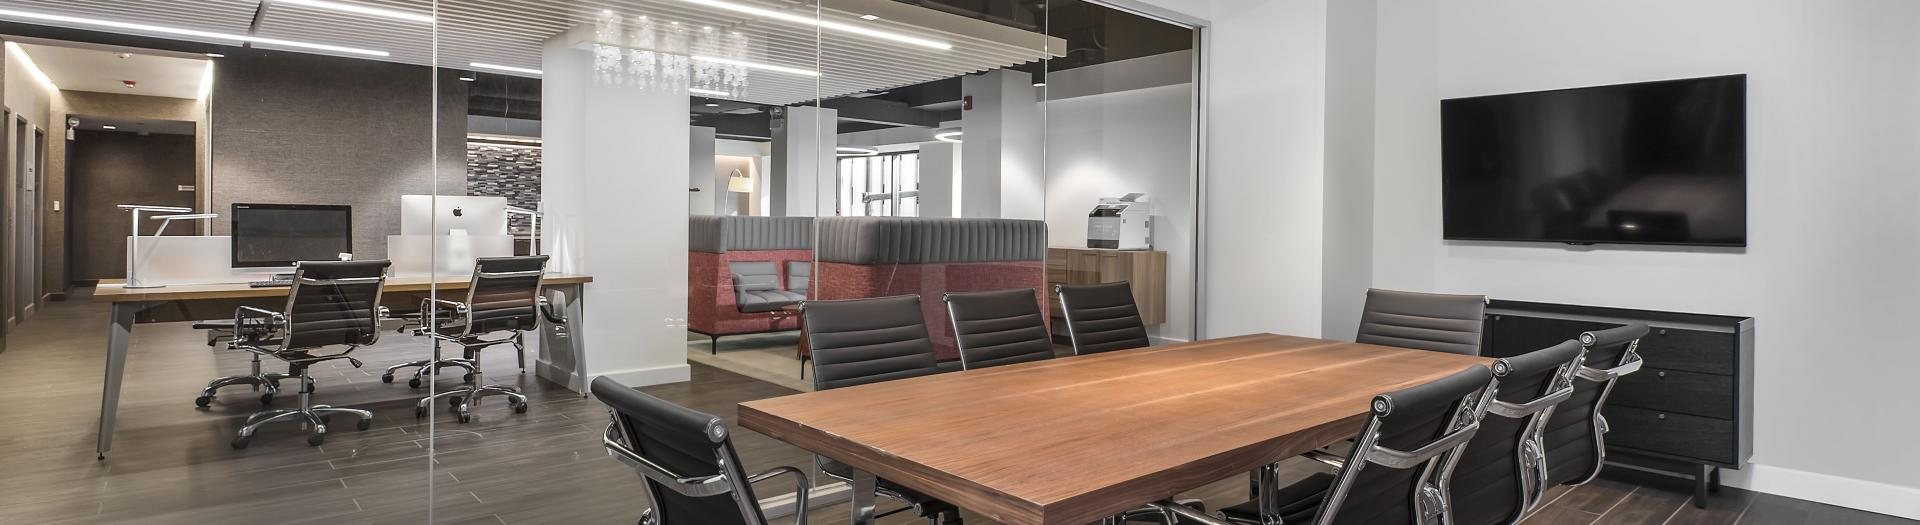 Interior Construction Group, Inc. | Chicago Commercial Interior General  Contractor